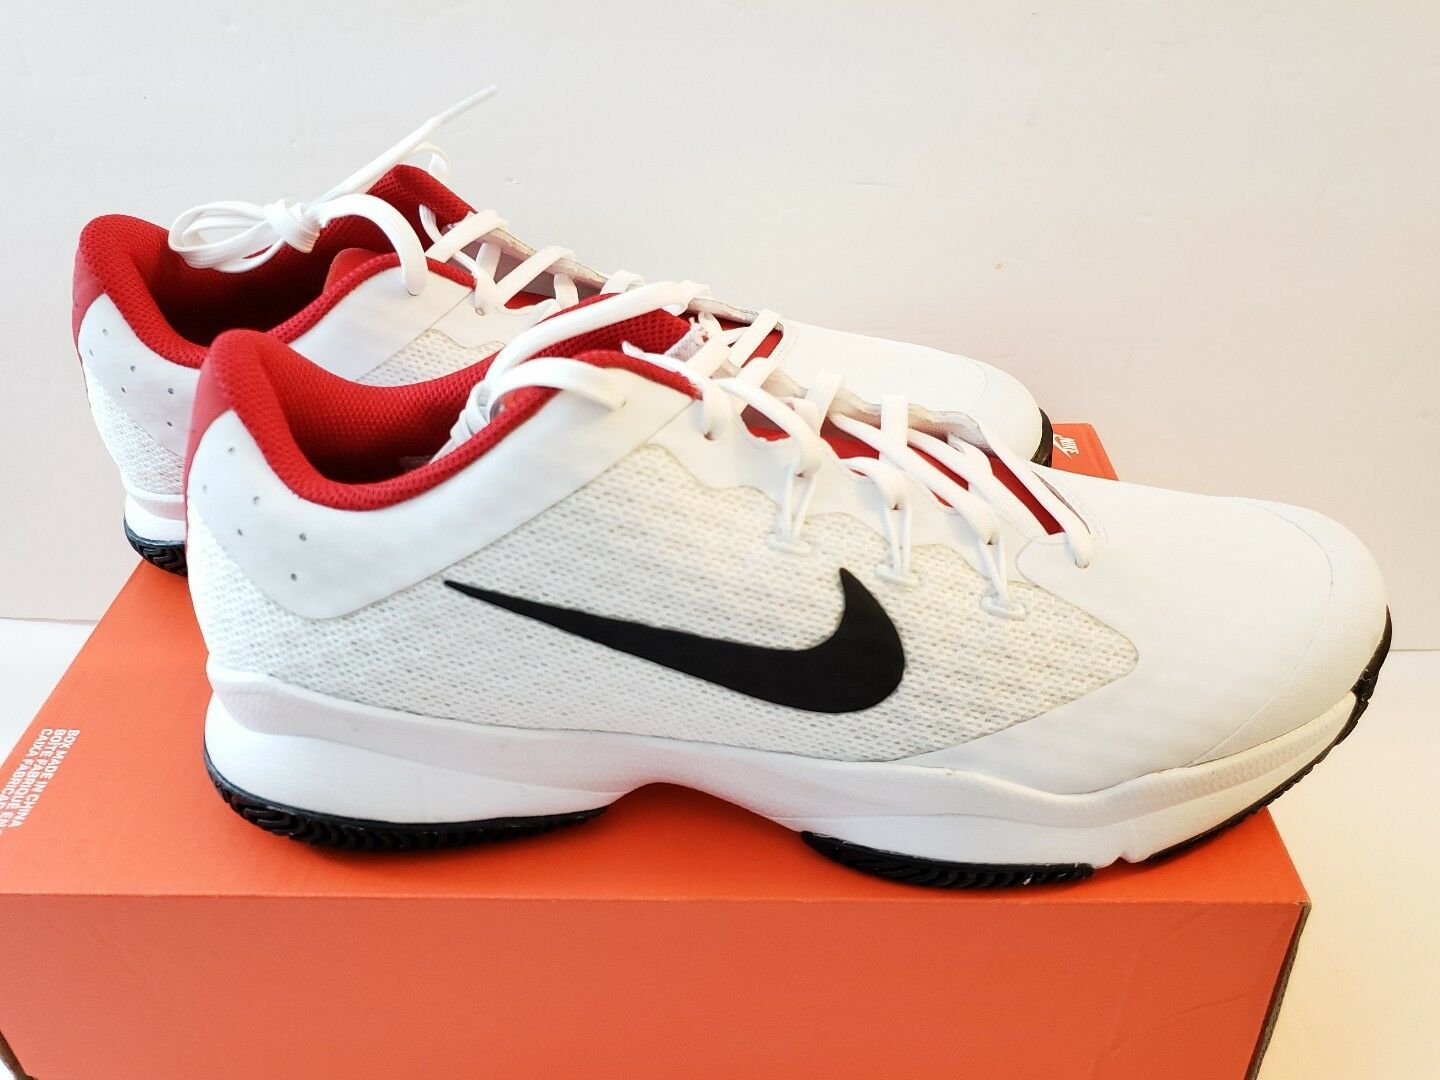 The most popular shoes for men and women Nike Men's Court Air Zoom Ultra Tennis Shoes Comfortable